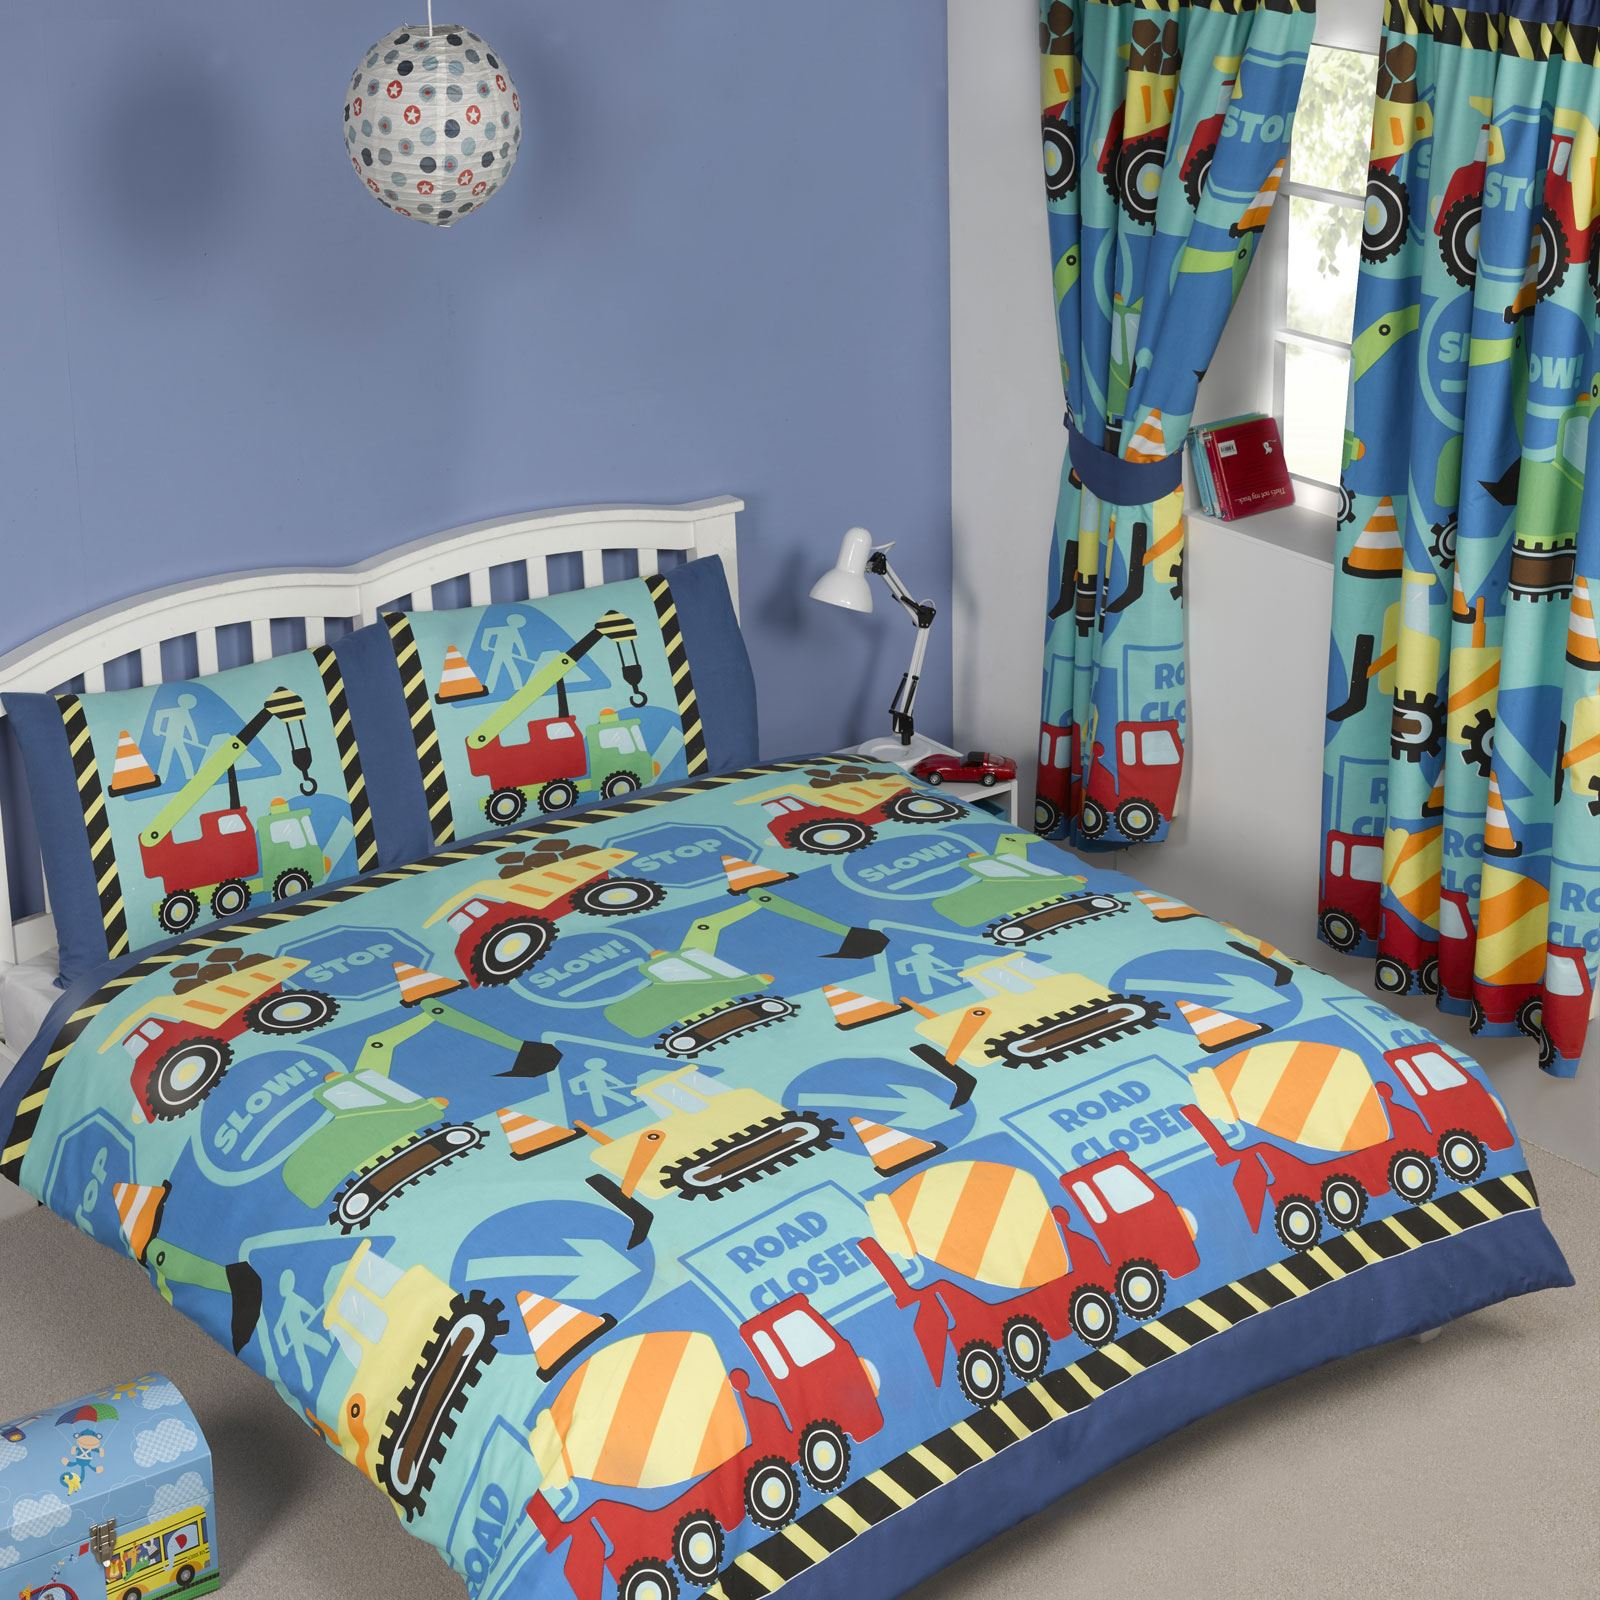 Boys Double Quilt Cover Details About Construction Time Double Duvet Cover New Builder Diggers Dumper Truck Boys